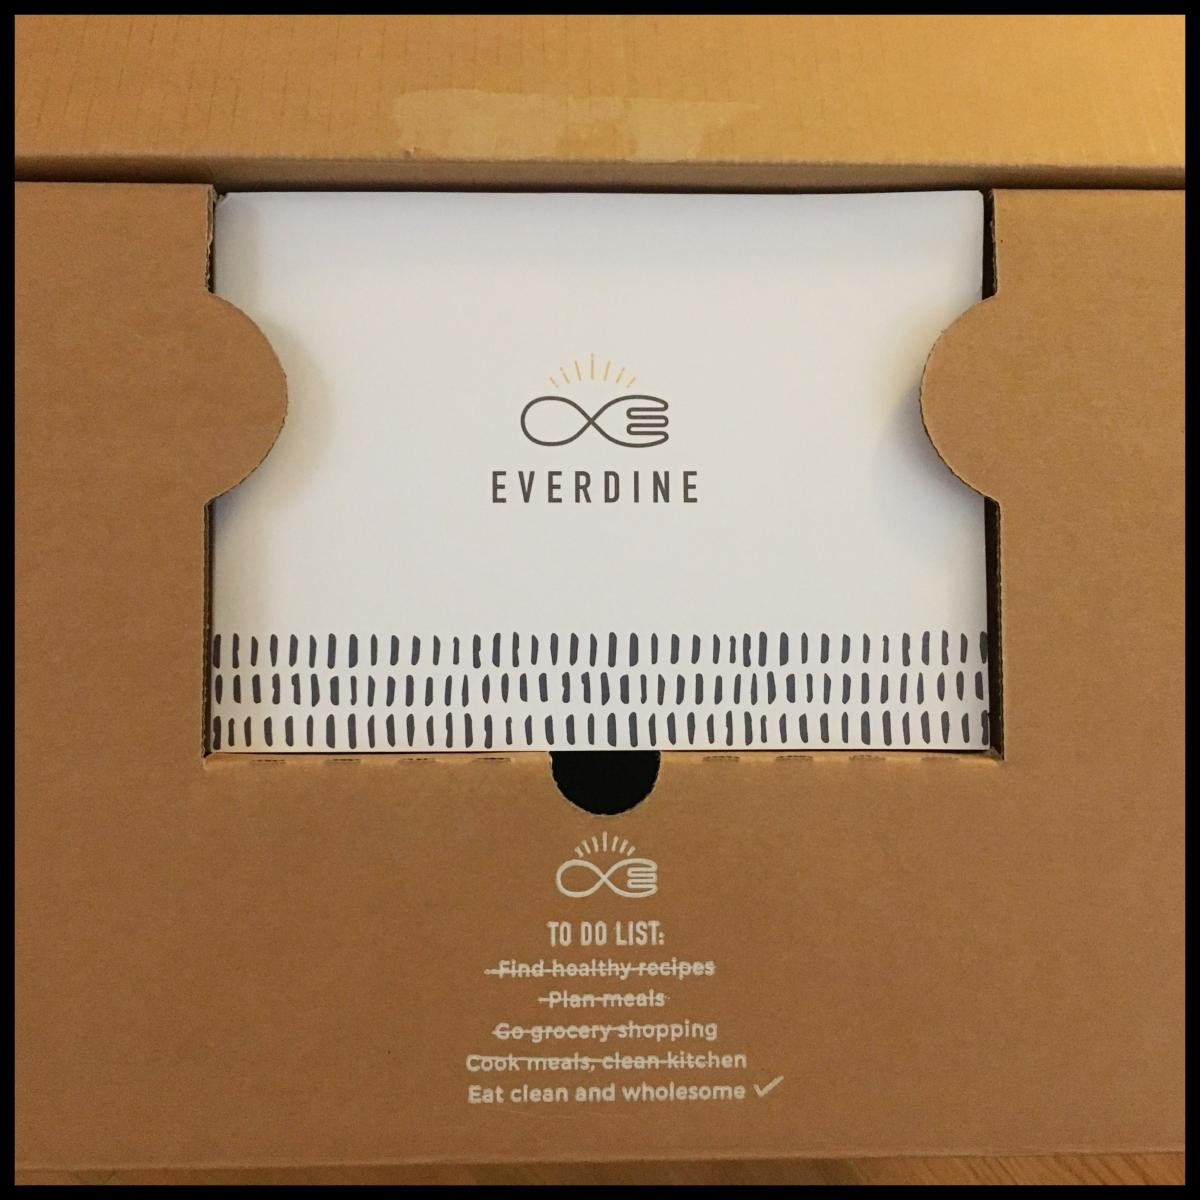 Everdine unboxing – top layer